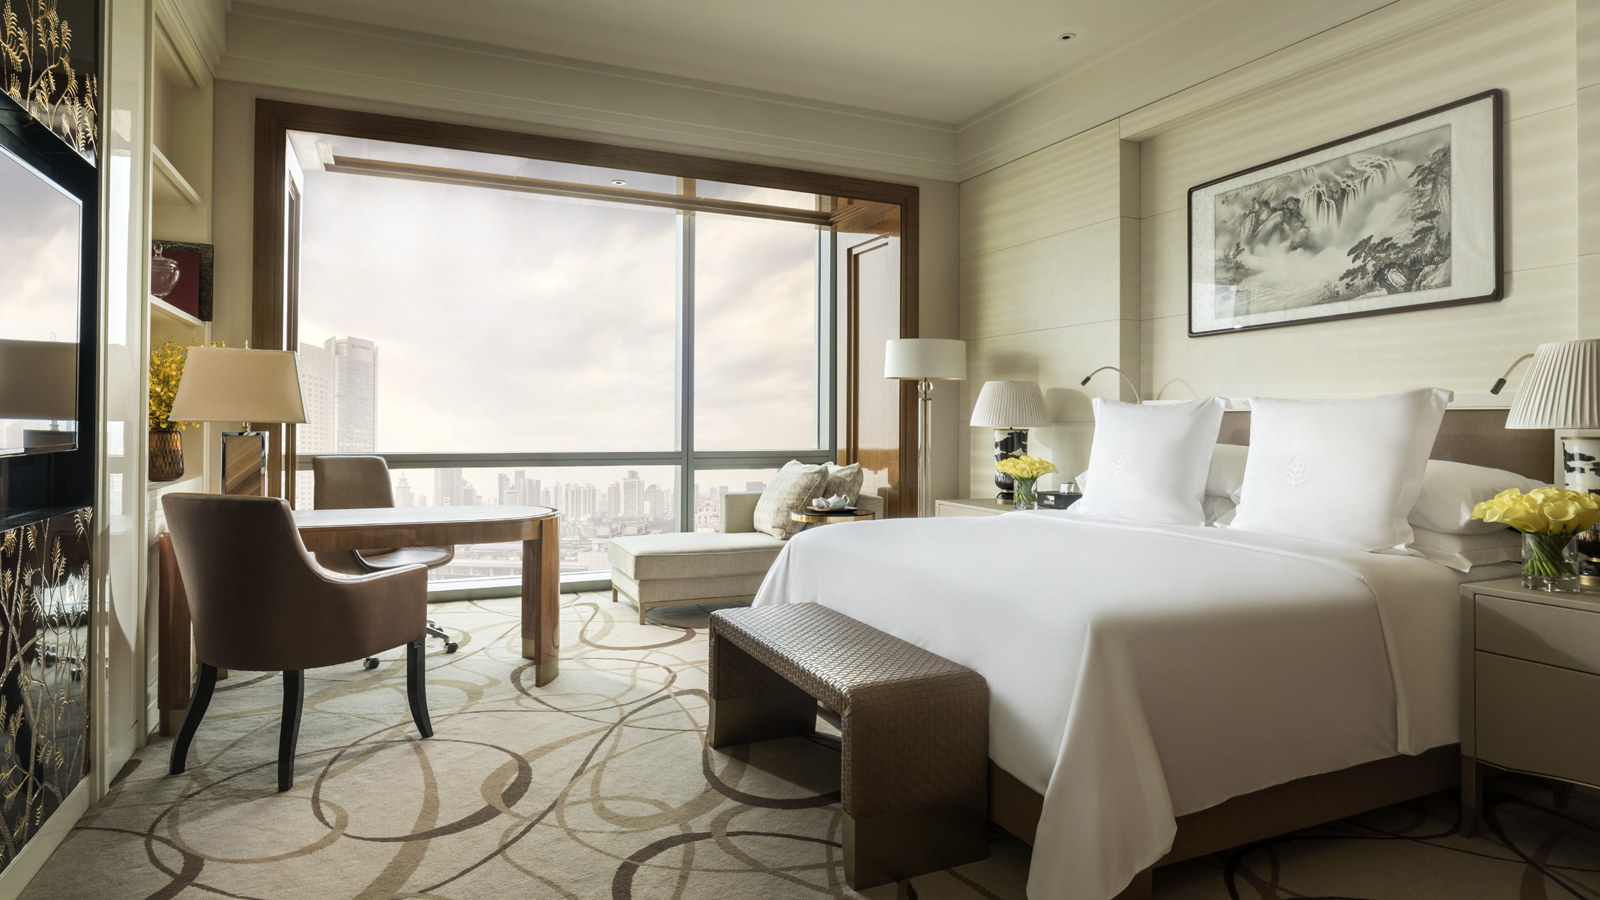 four seasons hotel Four seasons hotels limited, trading as four seasons hotels and resorts, is a canadian international luxury hospitality company headquartered in toronto, ontario.